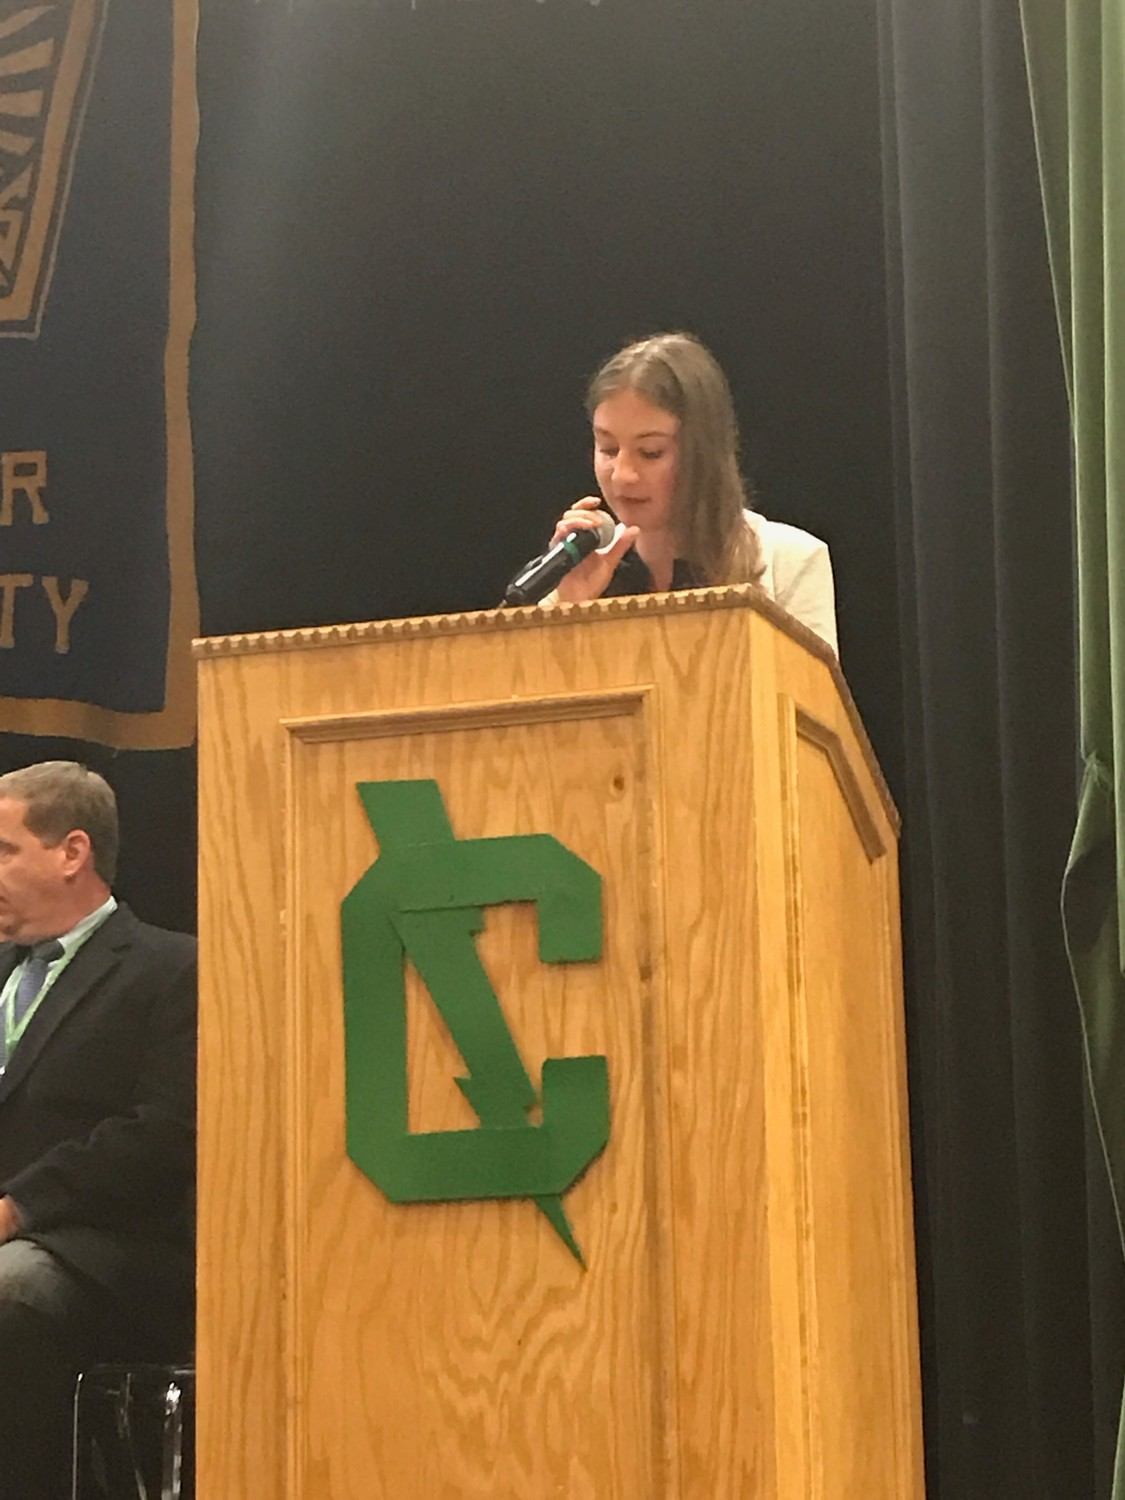 TOP HONORS: National Honor Society president Brenna Rojeck addresses the audience at the NHS induction ceremony on May 10.